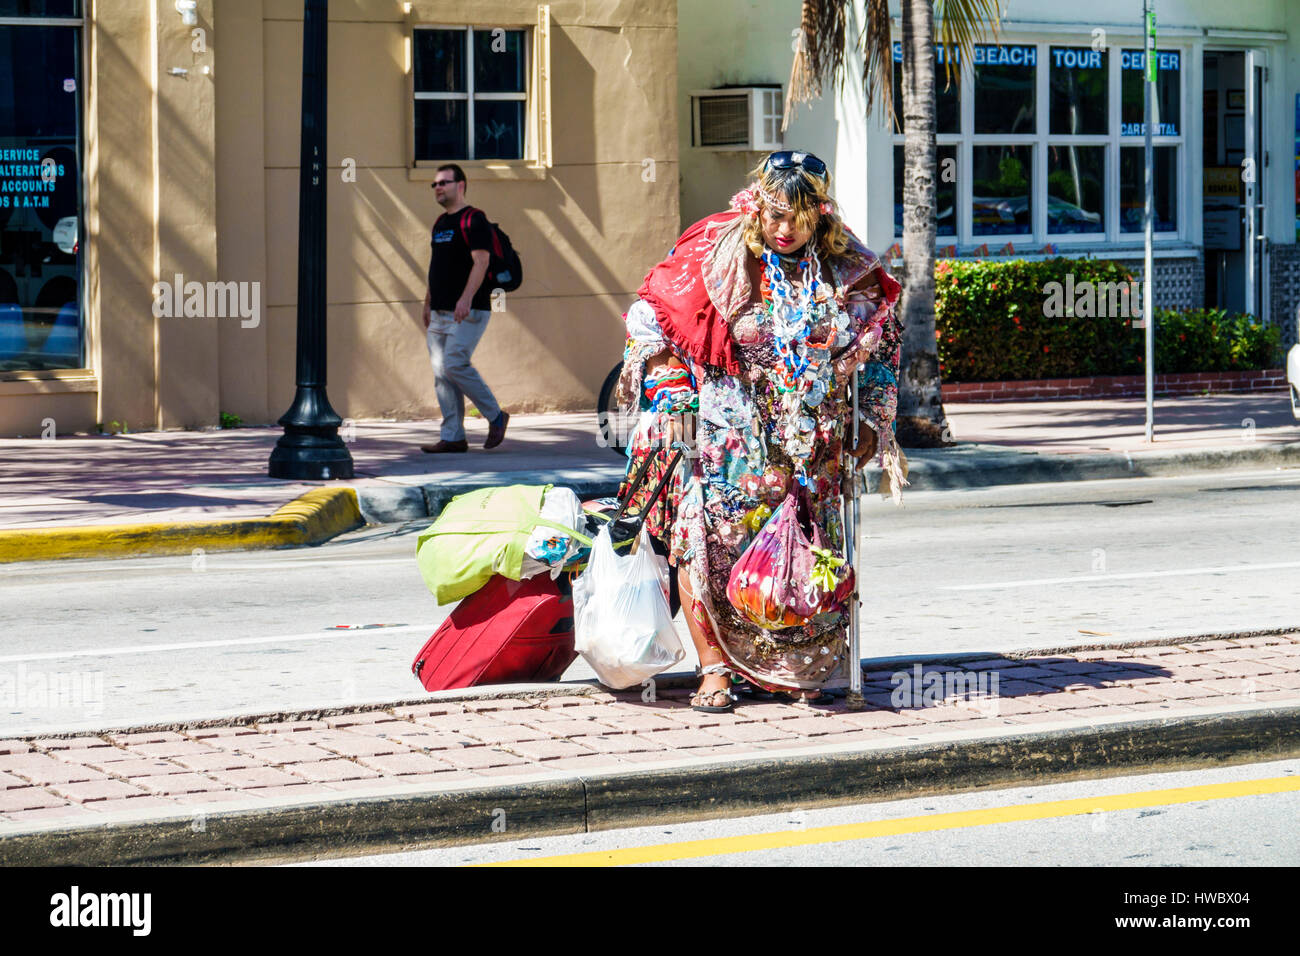 Miami Beach Florida Washington Avenue woman bag lady young adult homeless indigent street person eccentric rolling - Stock Image